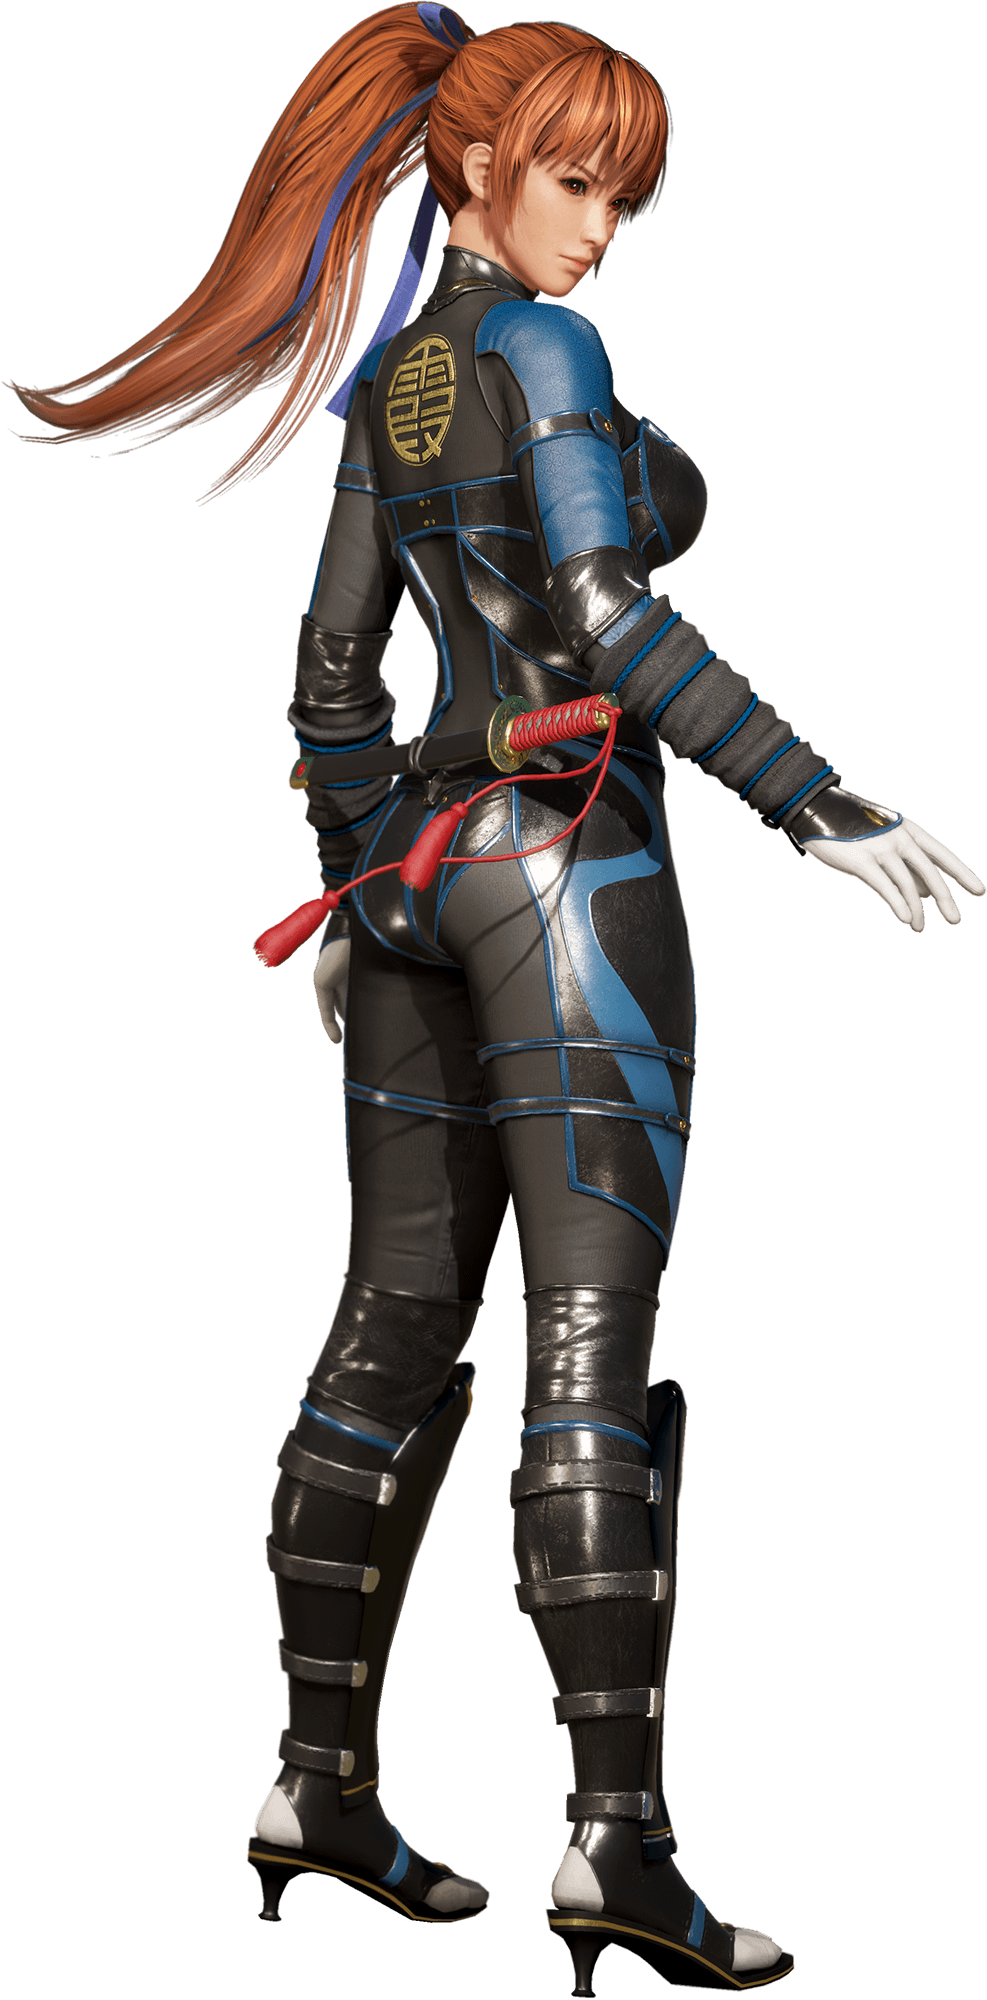 List of Dead or Alive 6 characters